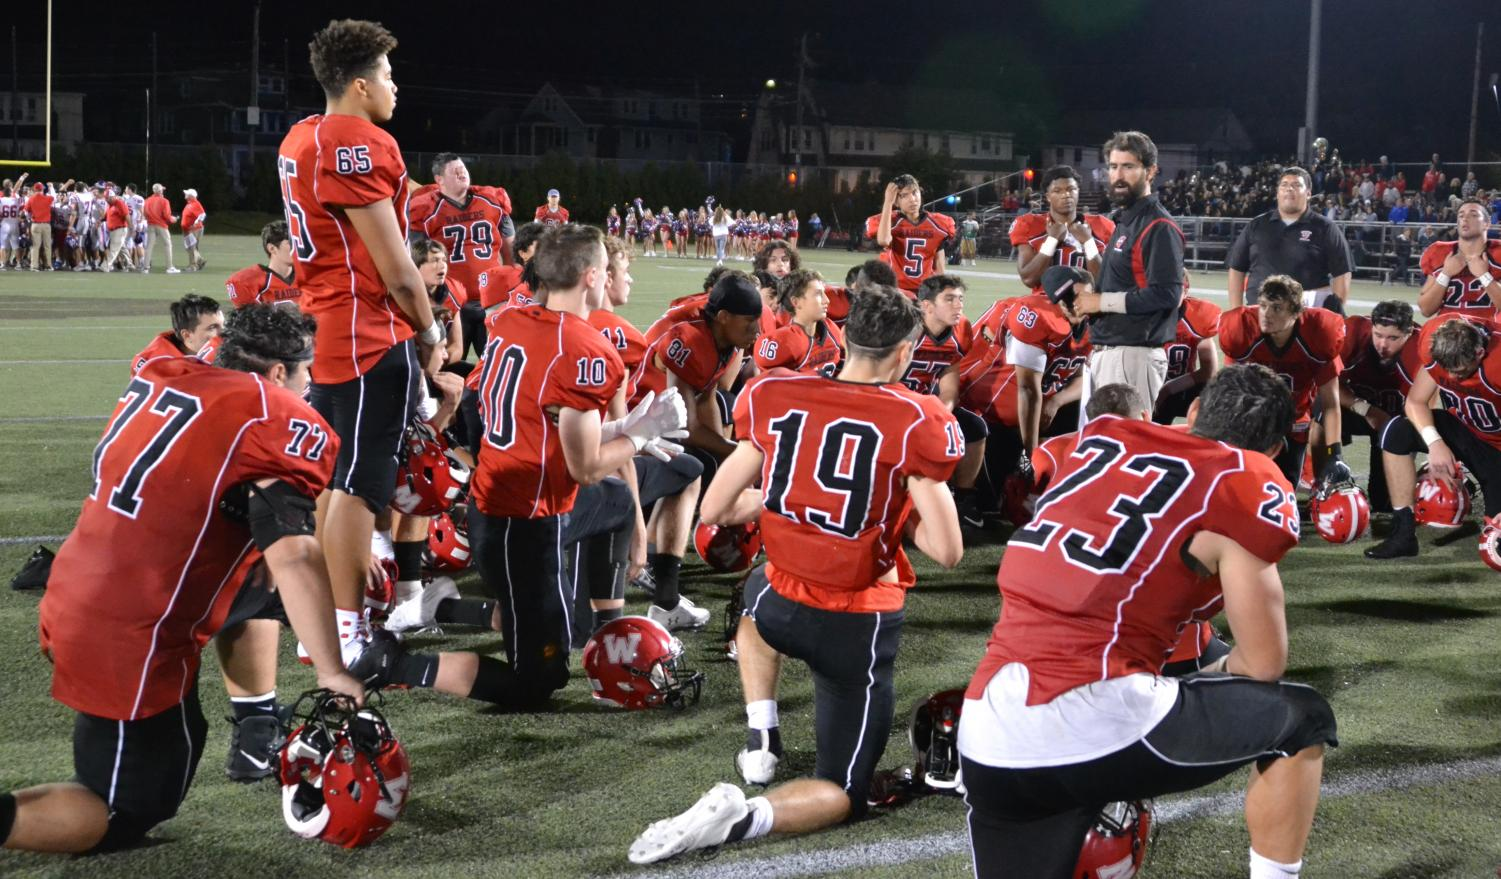 John+Cacace+and+the+Watertown+High+coaches+talk+with+the+Raiders+following+their+21-20+loss+to+undefeated+Burlington+on+Sept.+27%2C+2019%2C+at+Victory+Field.+